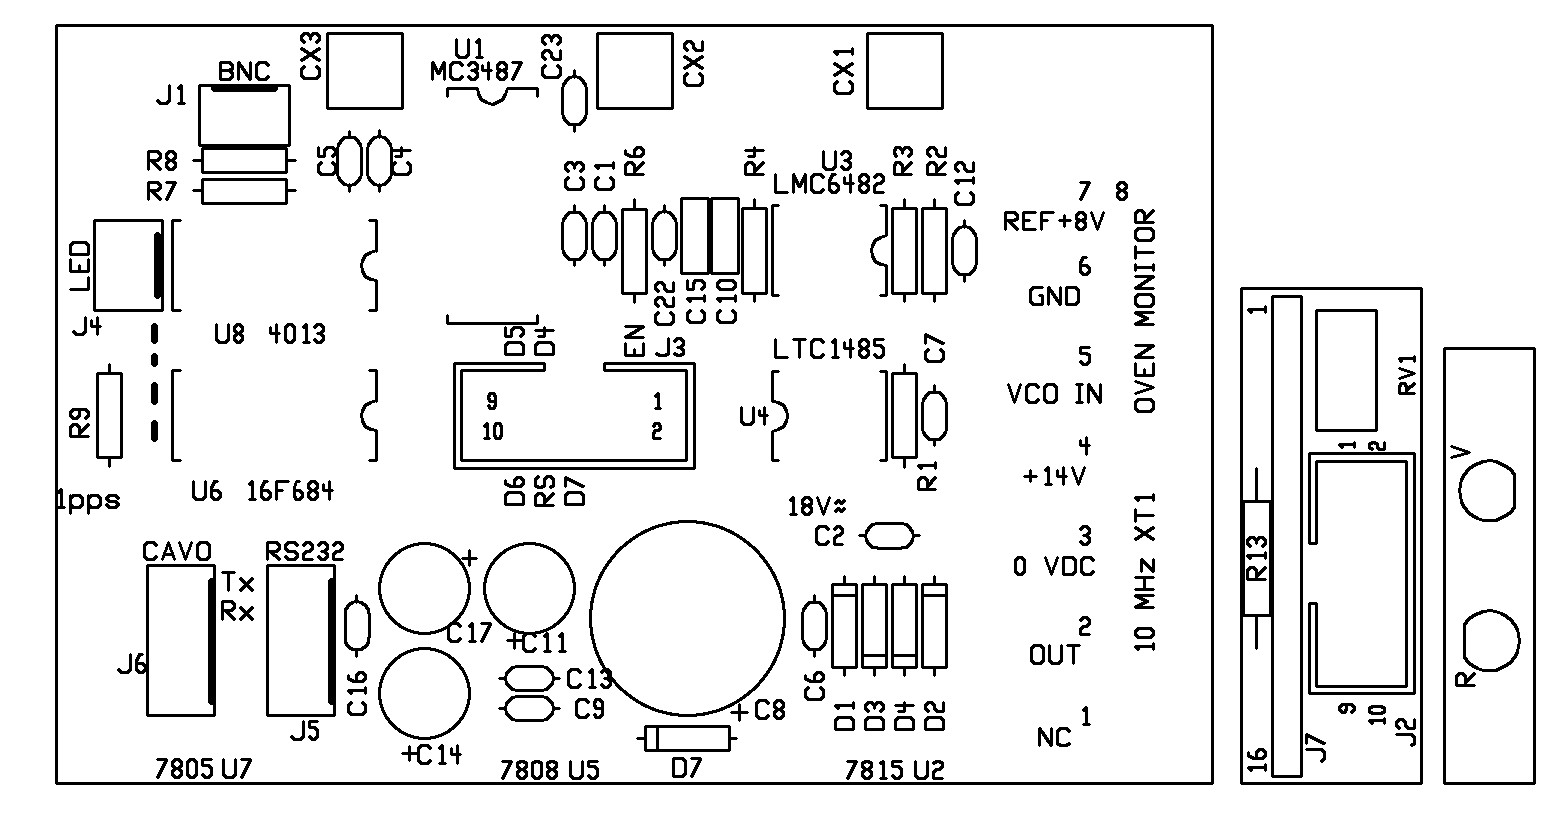 GPS-10MHz--FIG7